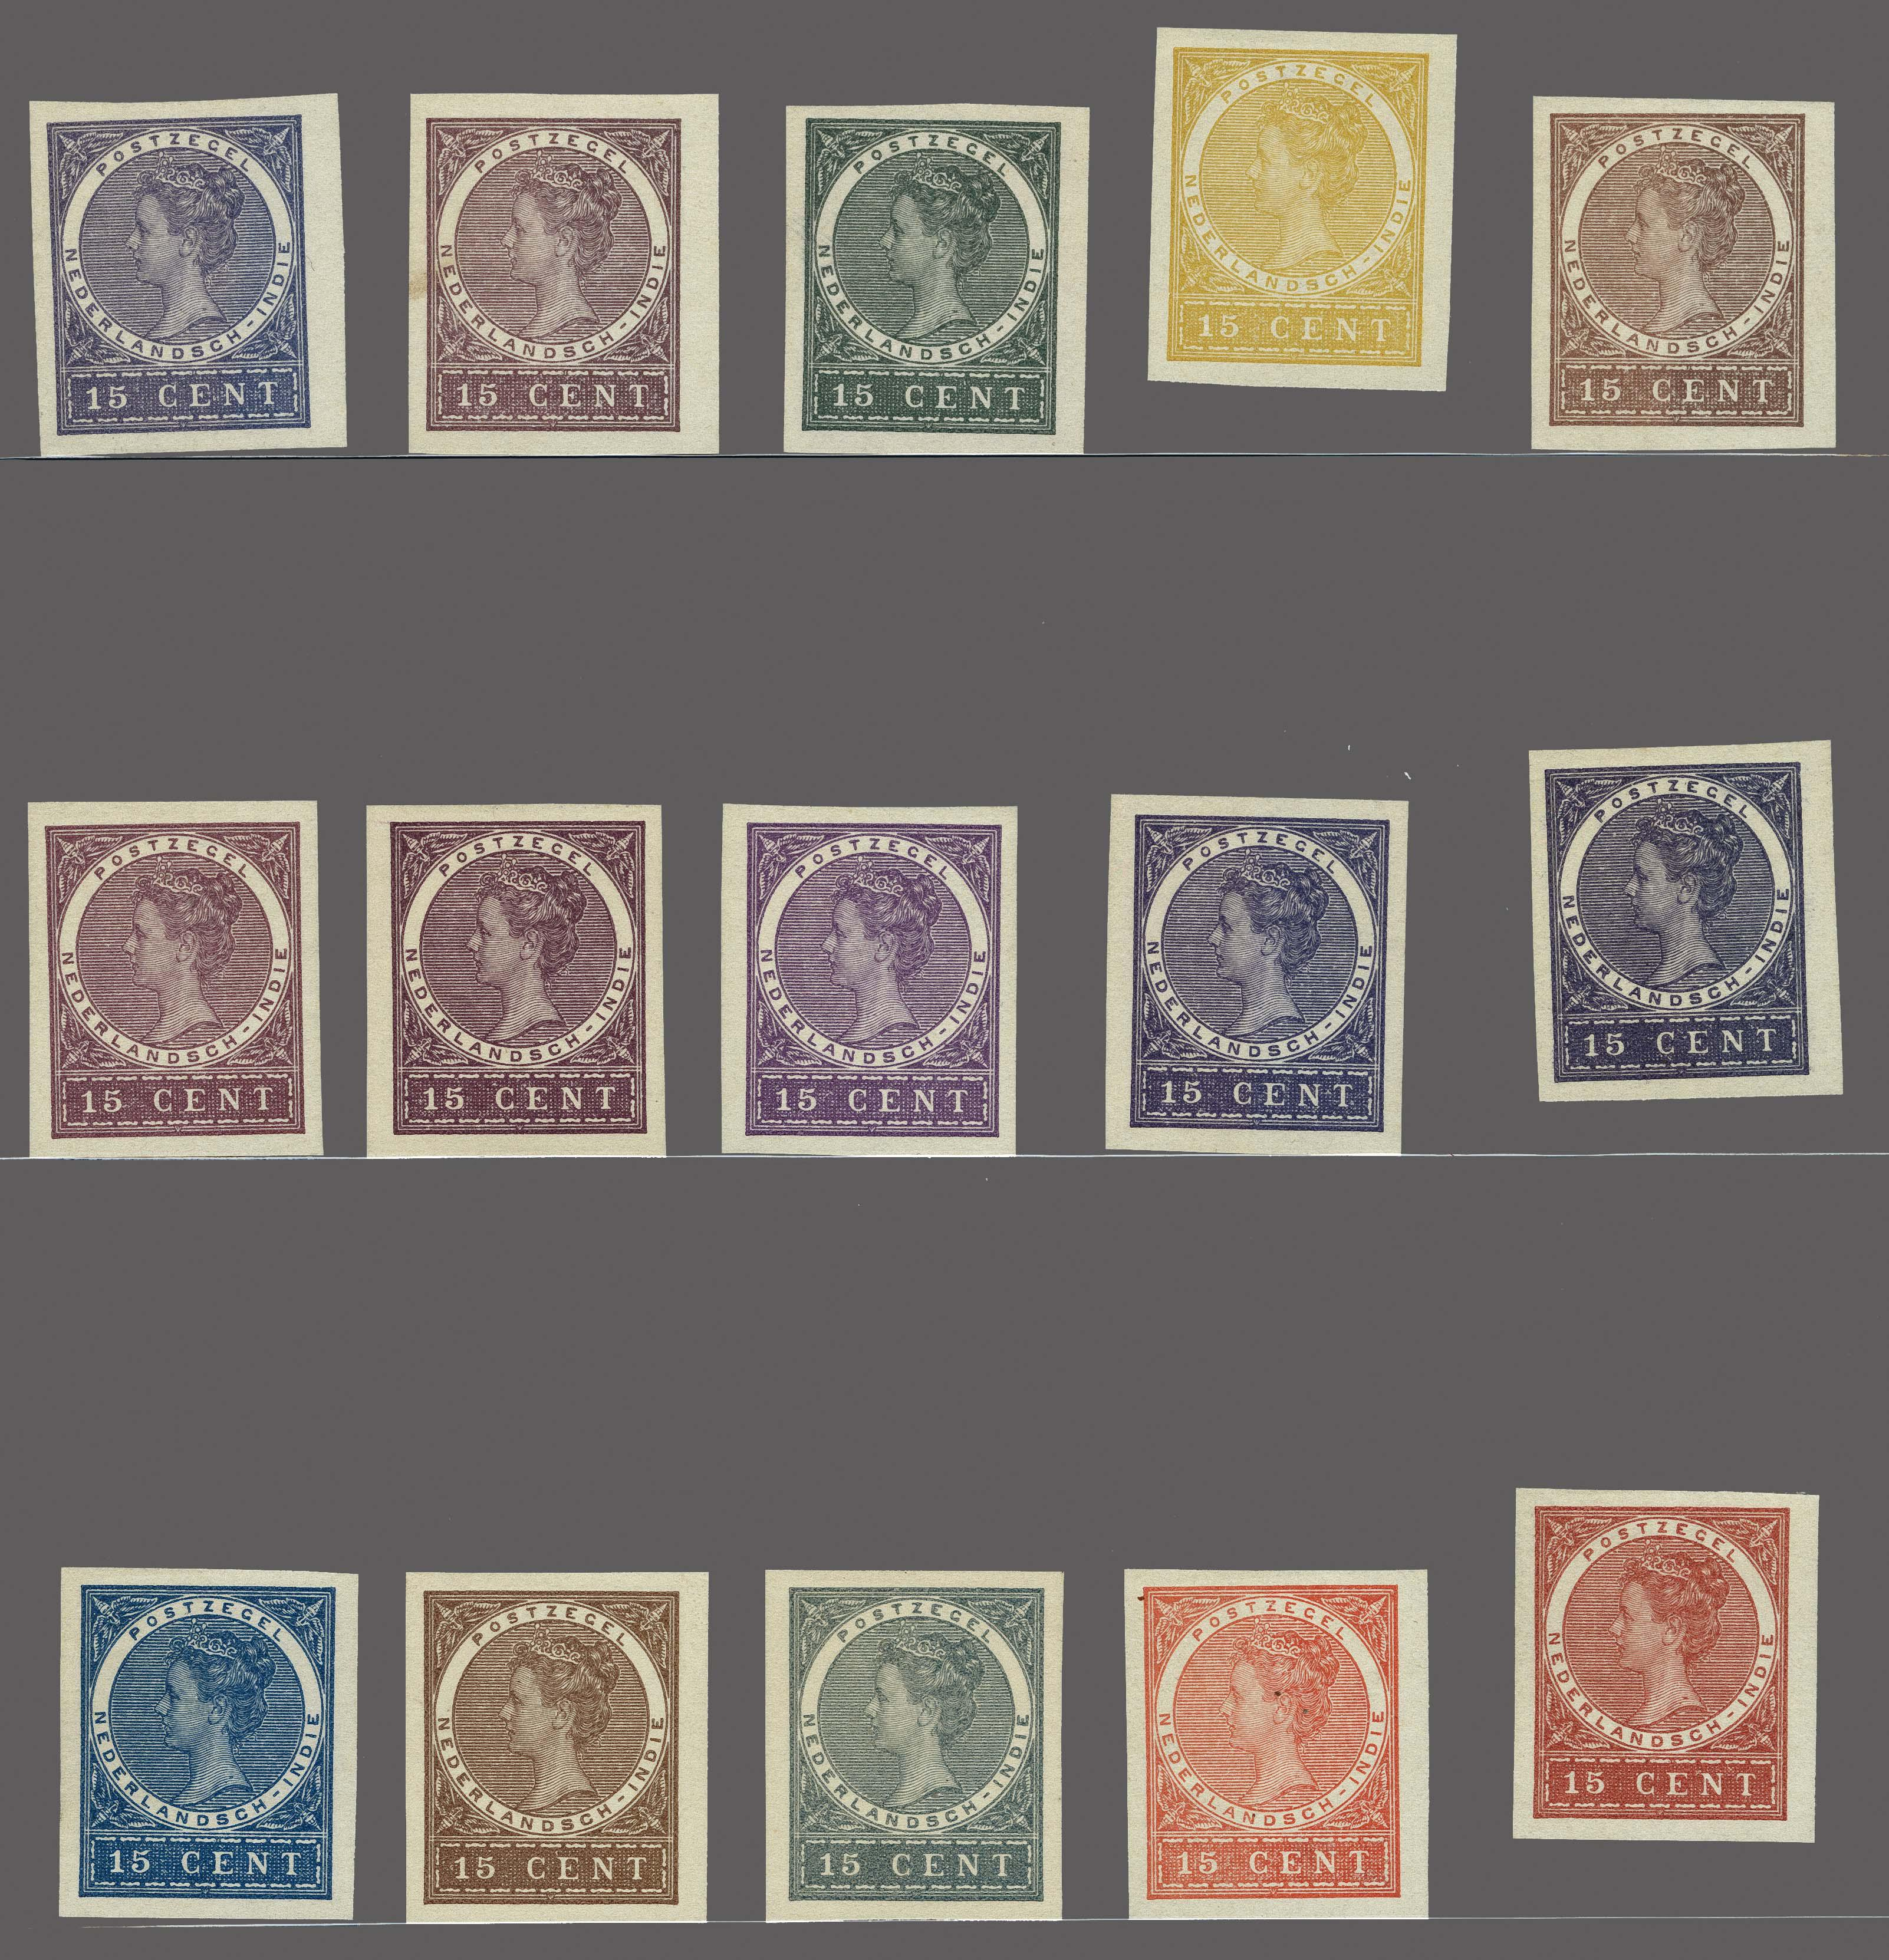 Lot 3315 - Netherlands and former colonies Netherlands Indies -  Corinphila Veilingen Auction 250-253 - Day 4 - Proofs of Netherlands former colonies